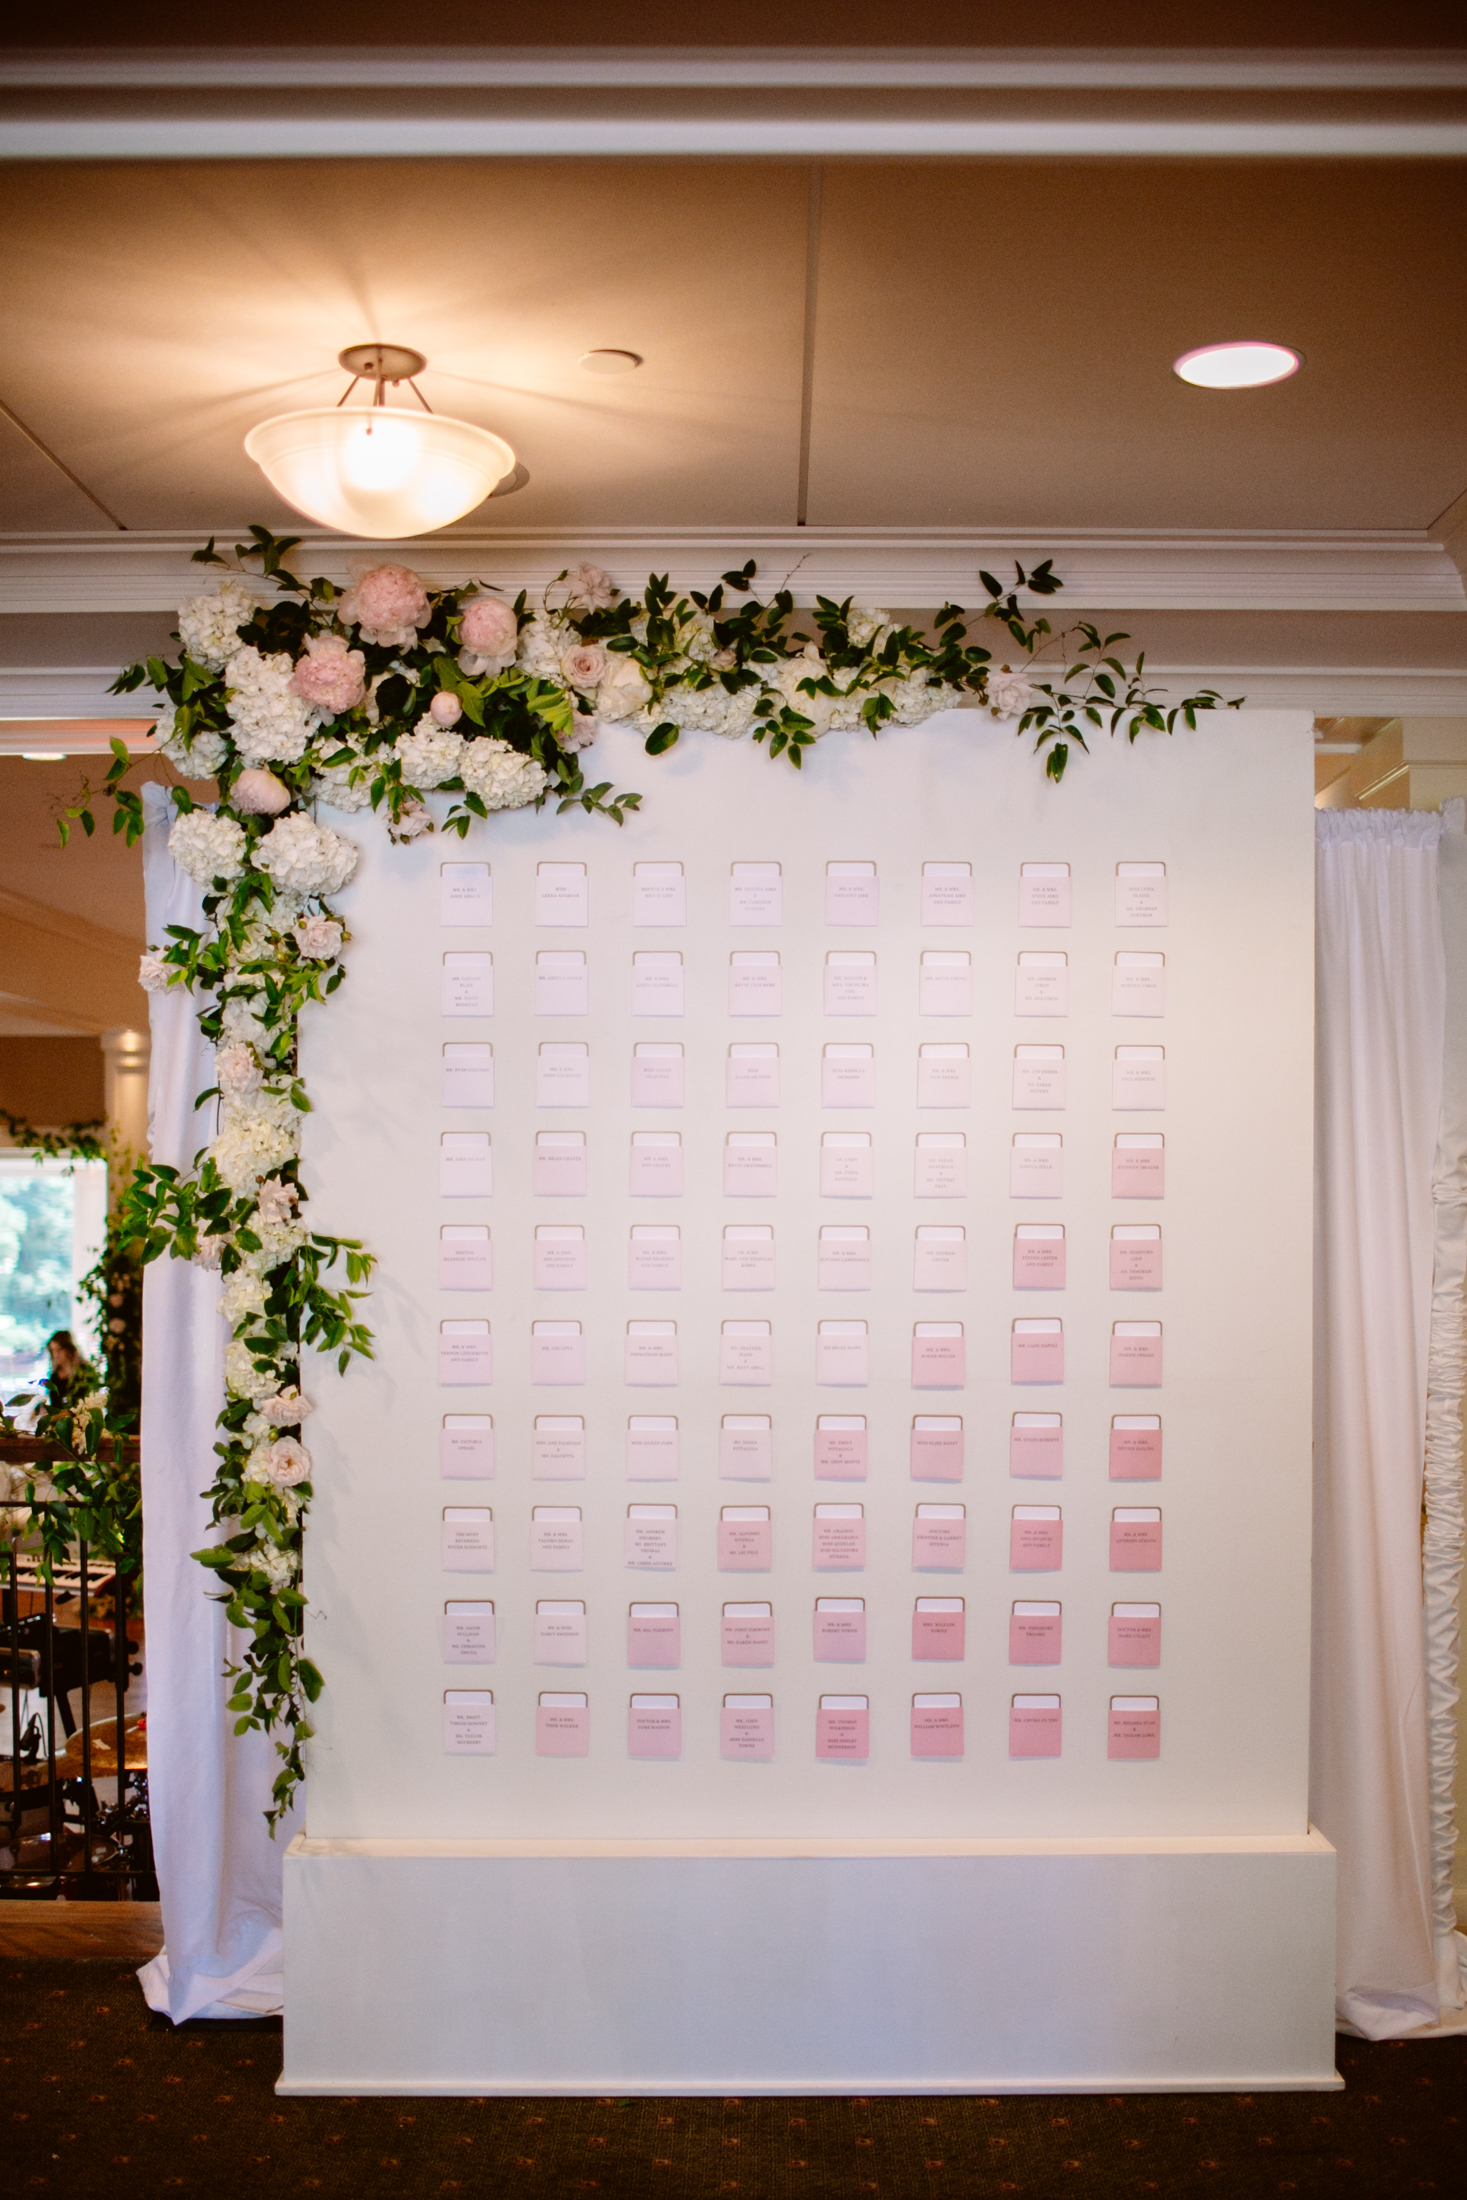 wedding day escort card display with flowers